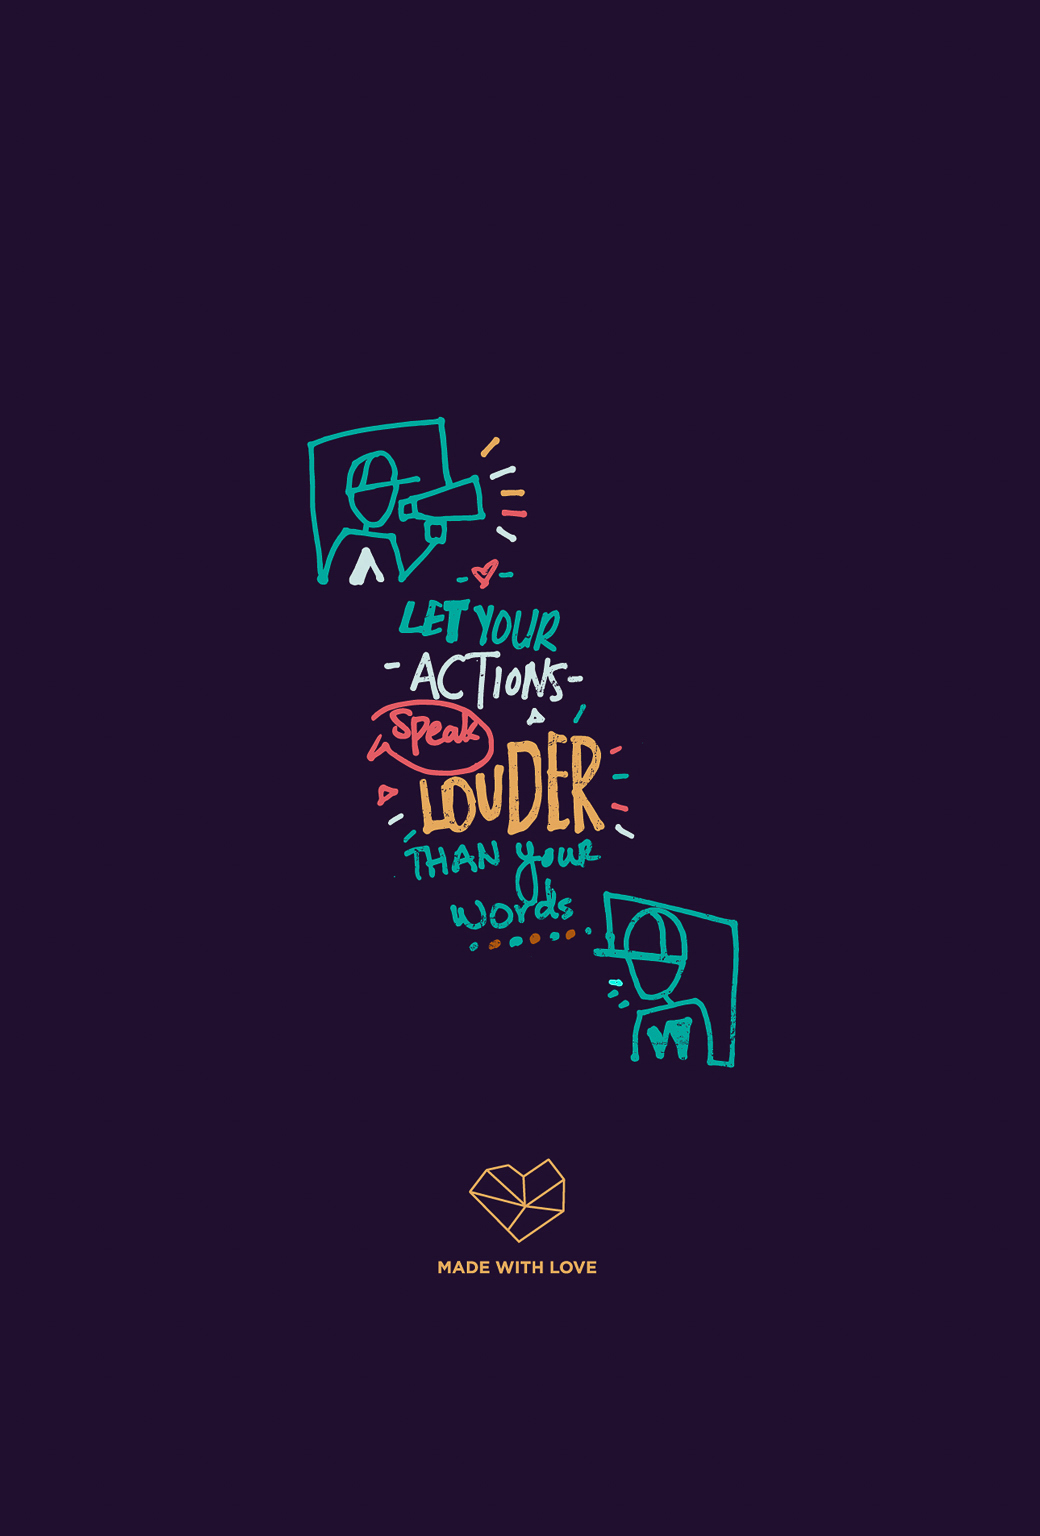 Good Vibes Quotes Wallpaper Download Words Wallpaper Gallery